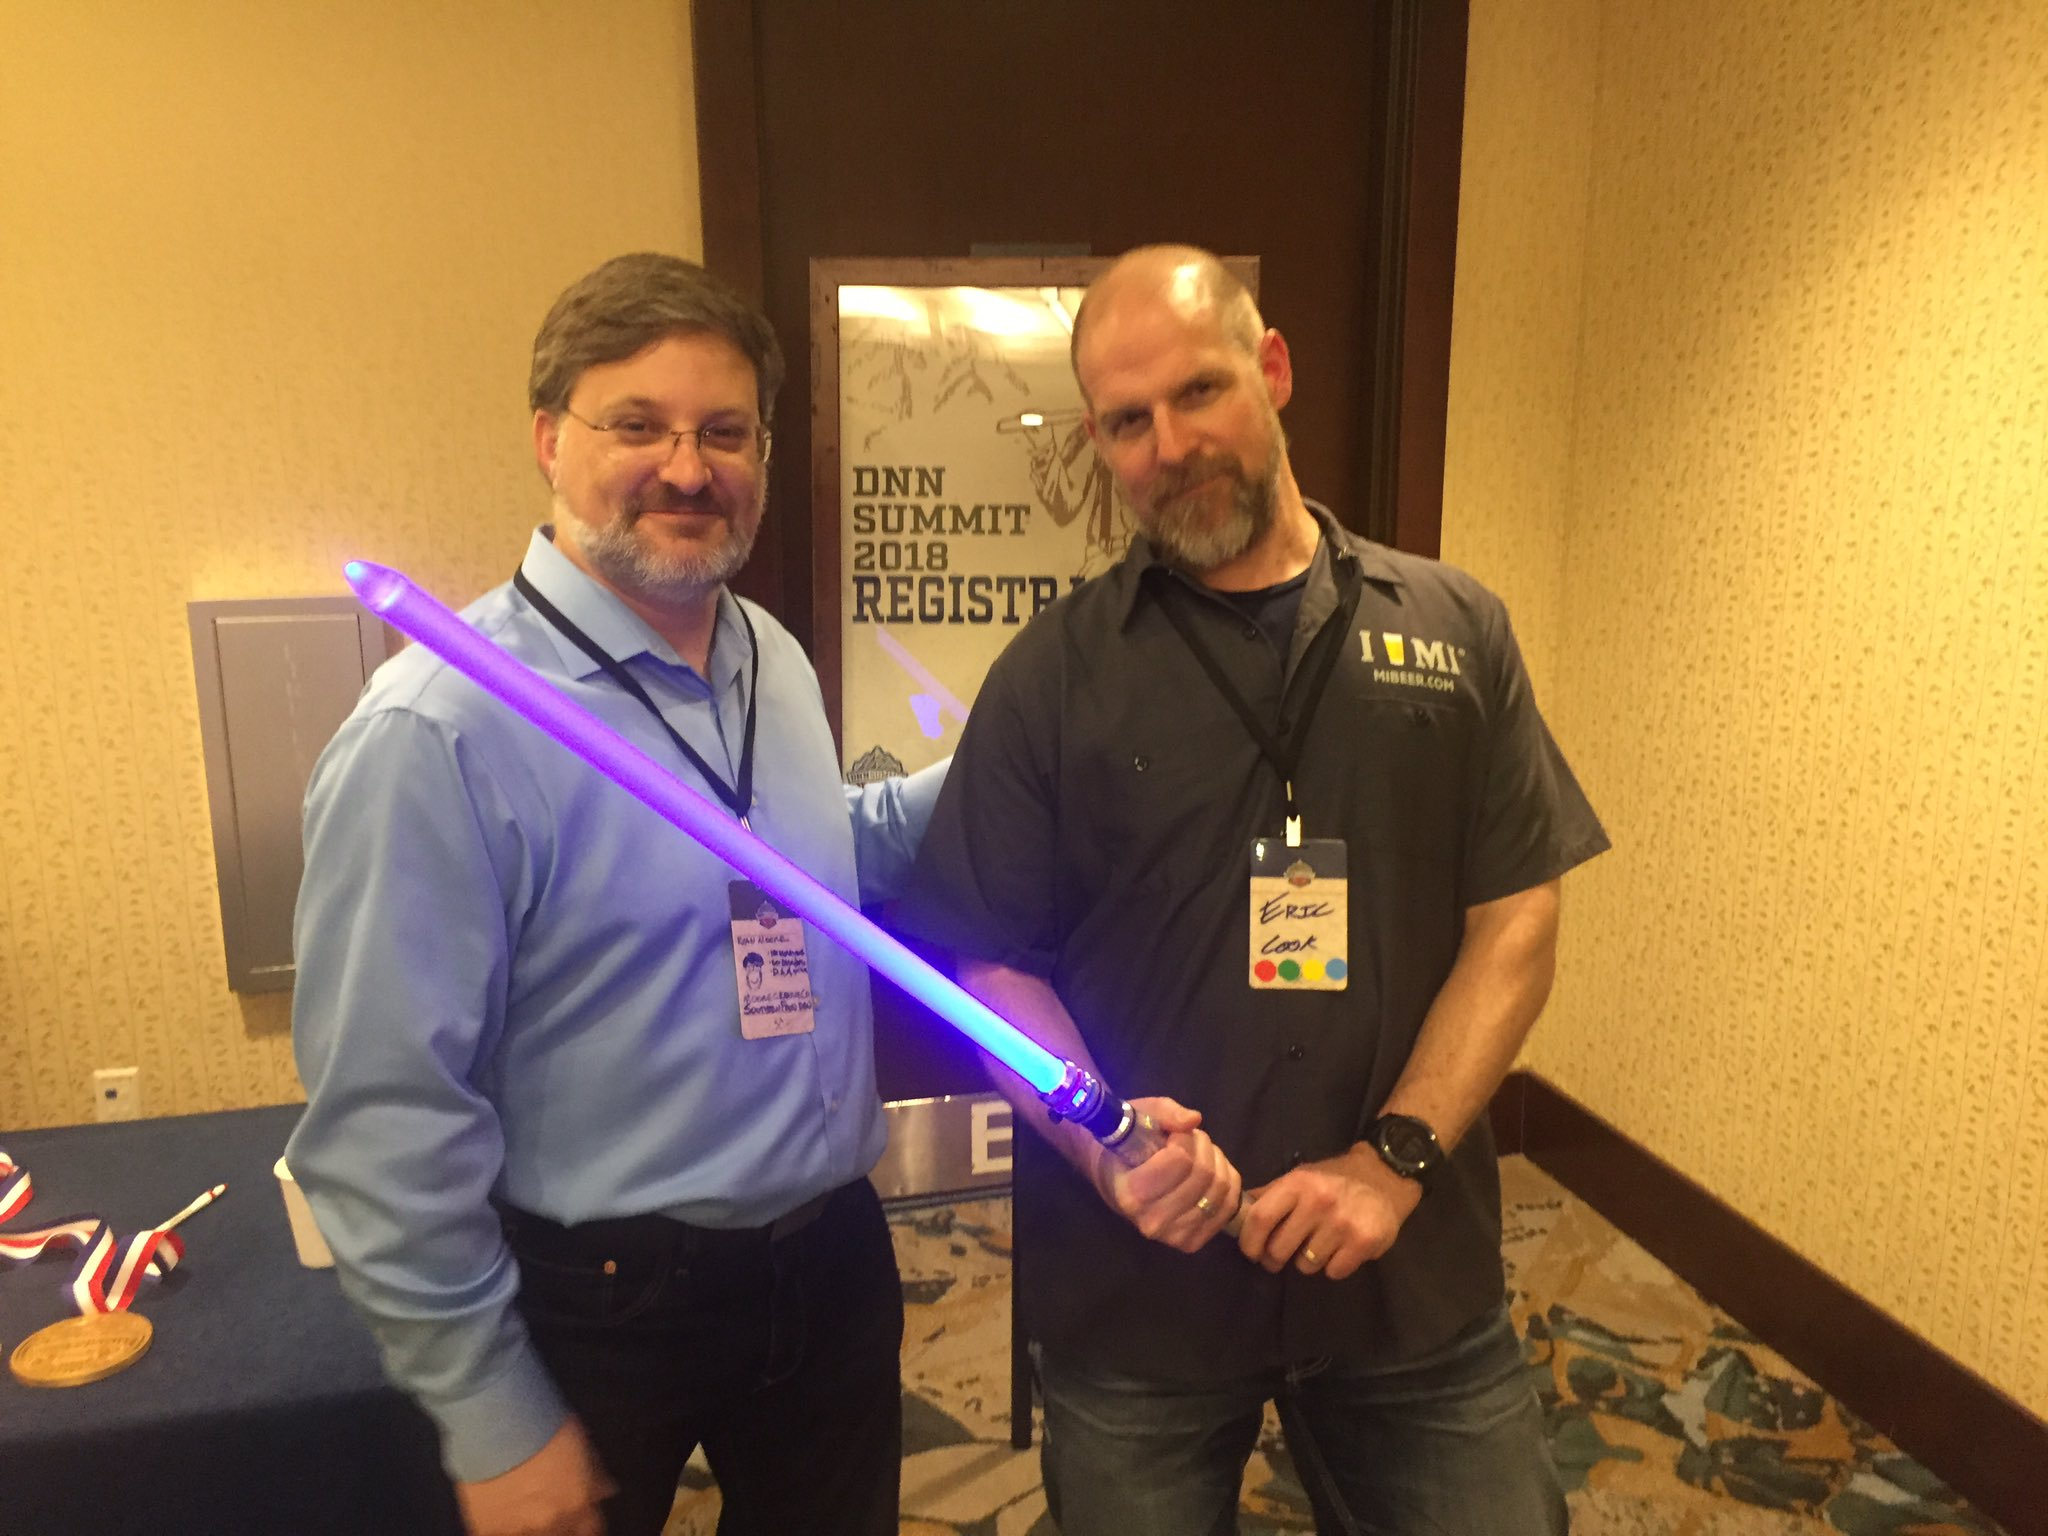 2018 DNN Summit Lightsaber winner Eric Cook